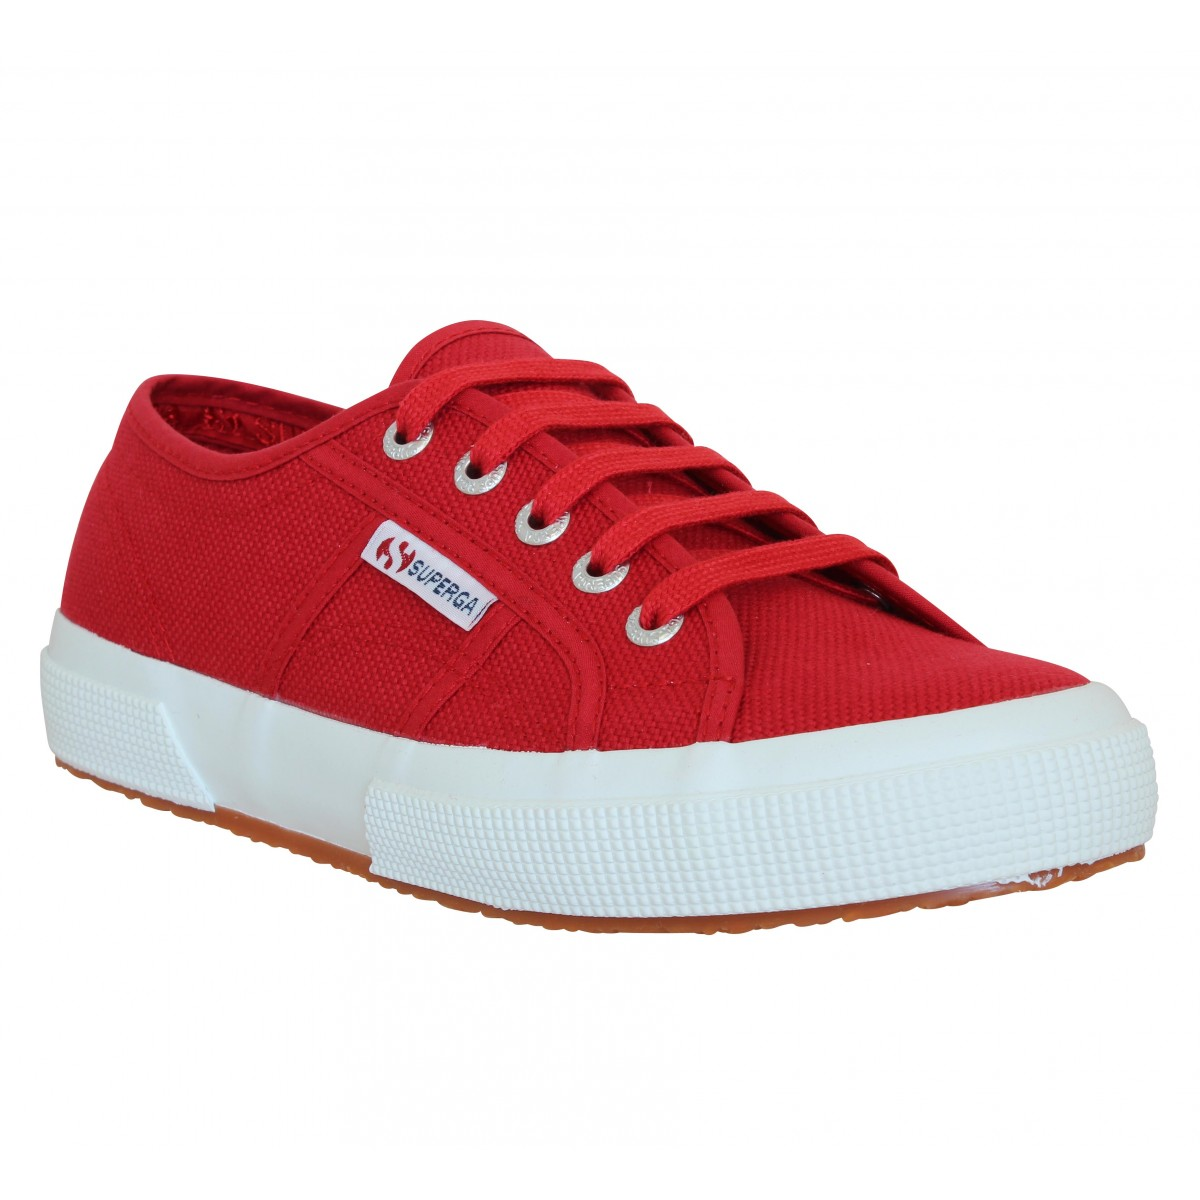 Baskets SUPERGA 2750 toile Femme Rouge